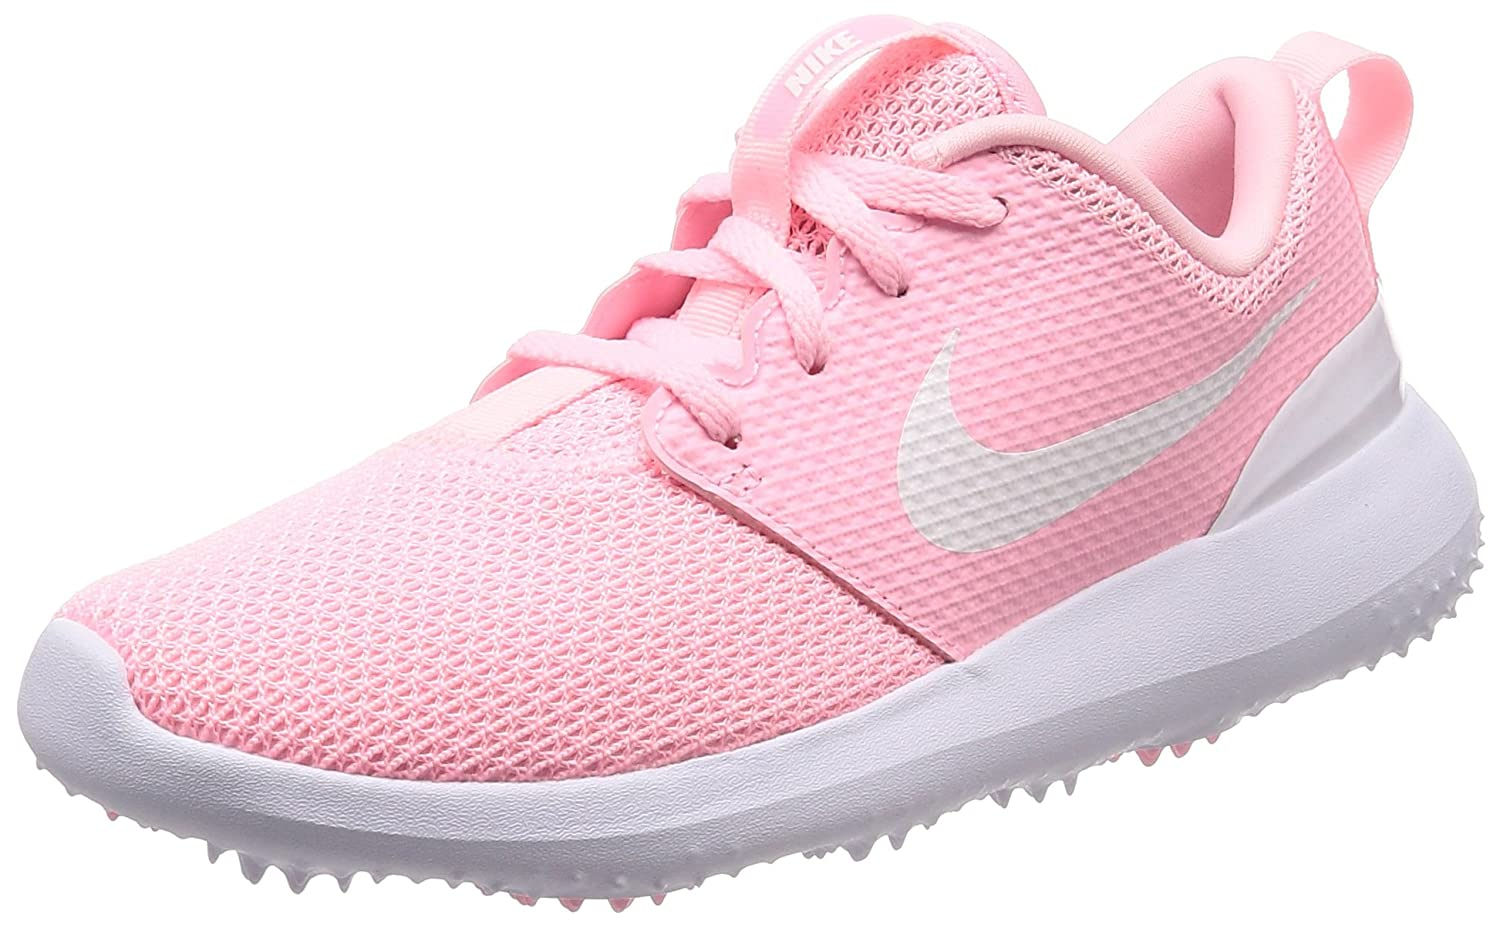 NIKE Women's Roshe G Golf Shoes AA1851-400 B071W5H83N 10 B(M) US|Arctic Punch/White